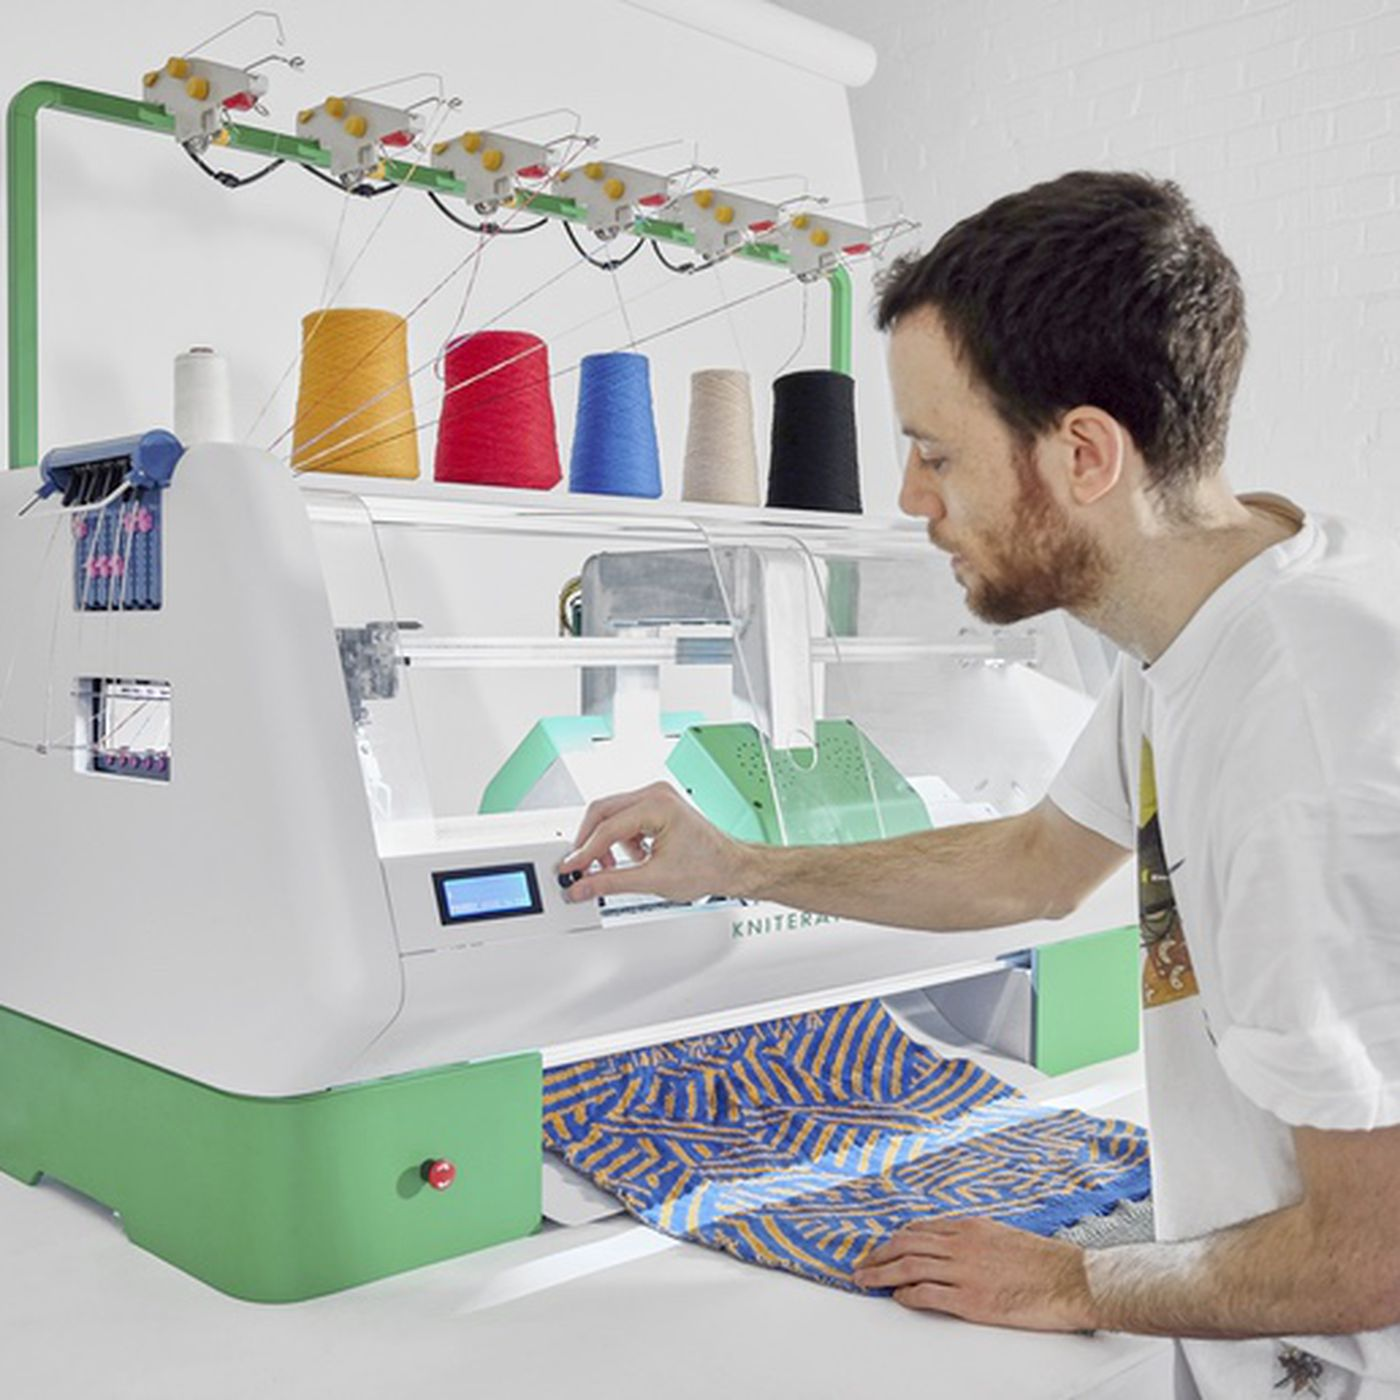 Print Out A Sweater With Kniterate A 3d Printer For Knitting The